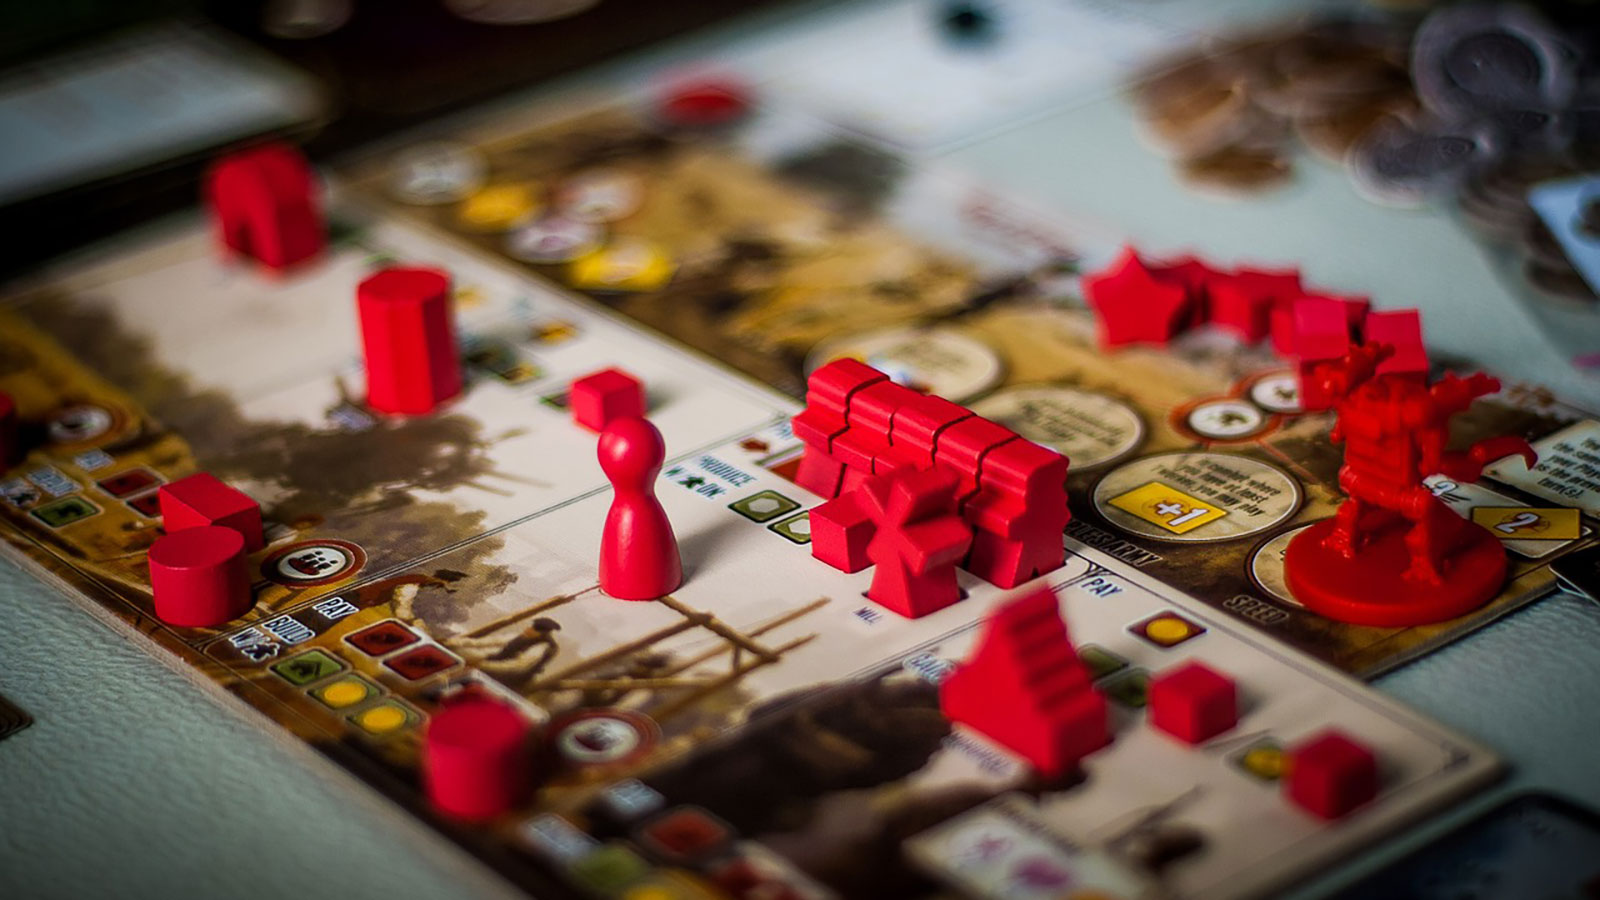 Do It Yourself: Making Your Own Board Game